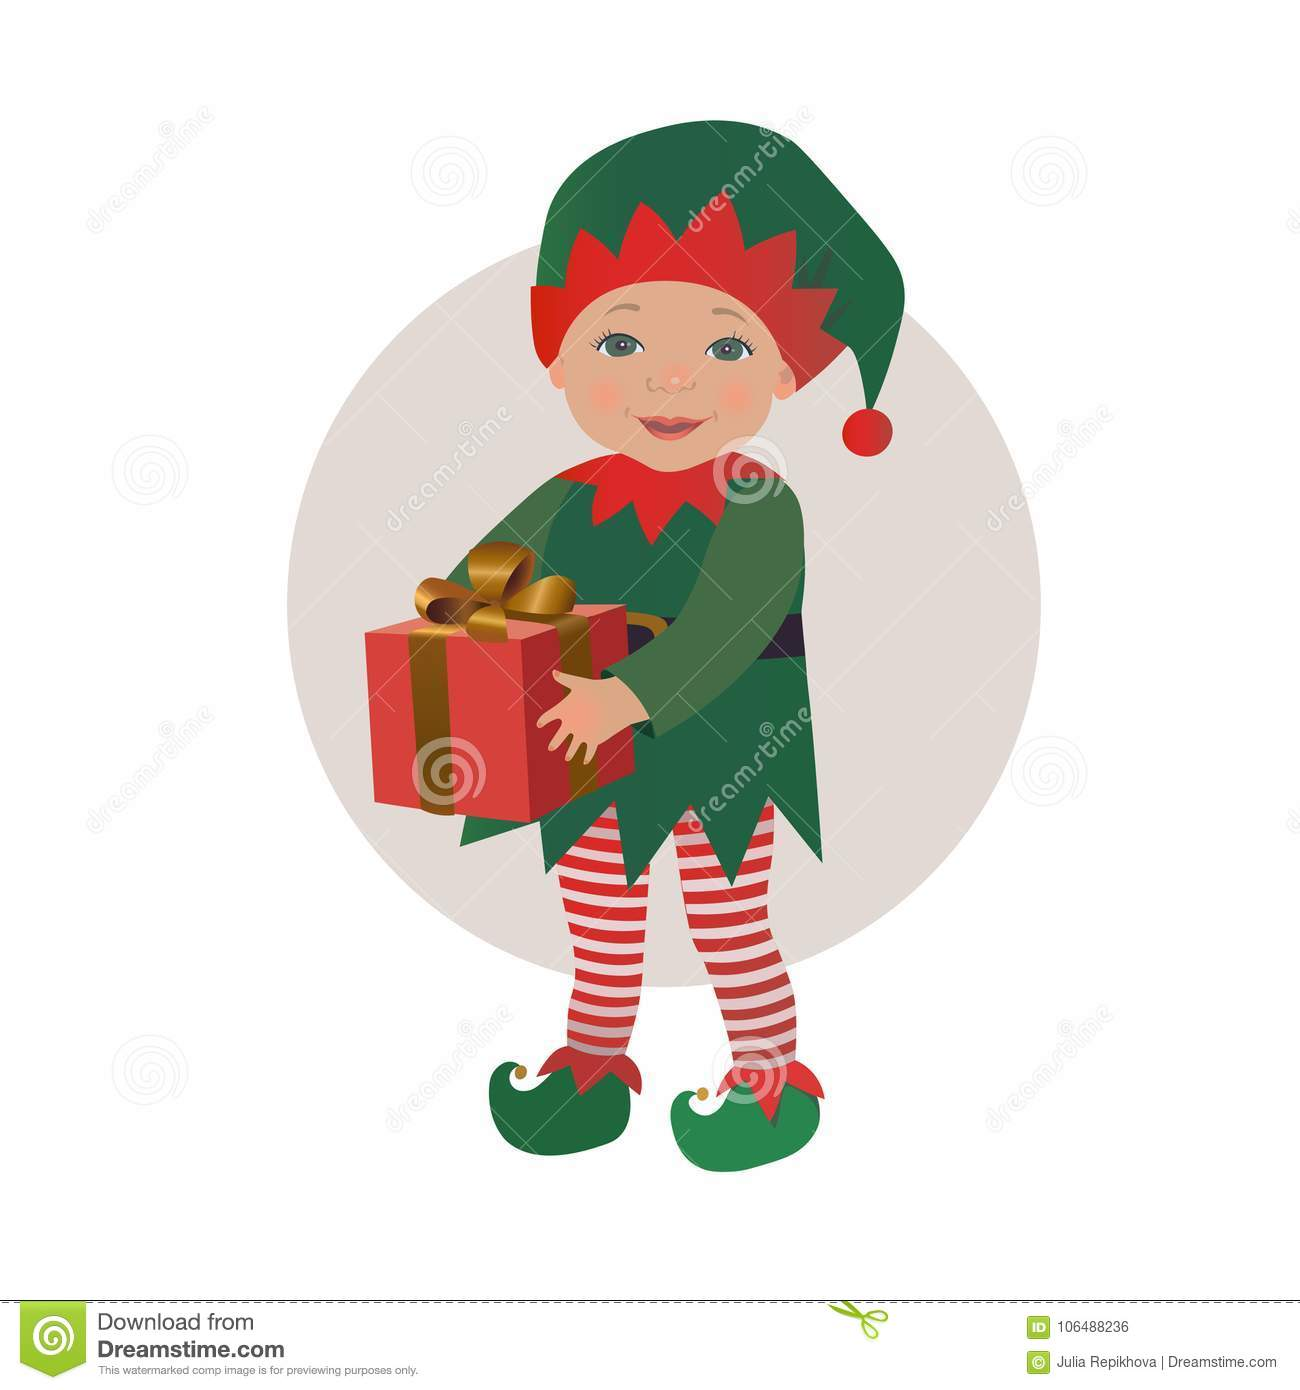 f9b568b9429 Cute Baby Wearing Christmas Elf Costume Holding Gift Box Stock ...